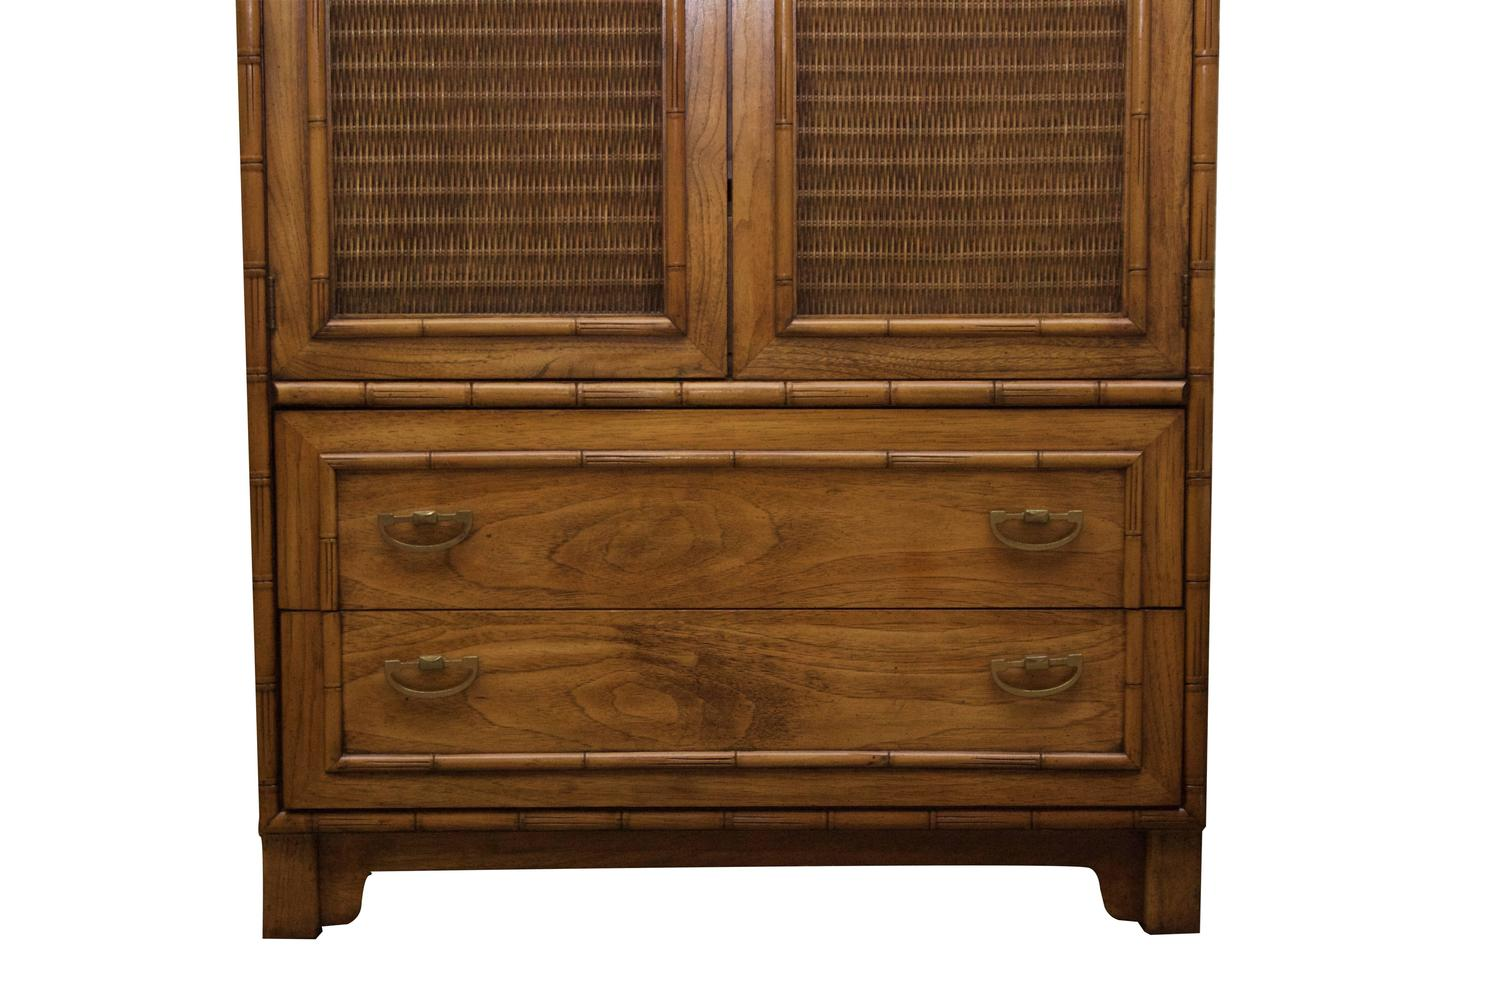 Lane Furniture Armoire Faux Bamboo Armoire By Lane Furniture For Sale At 1stdibs